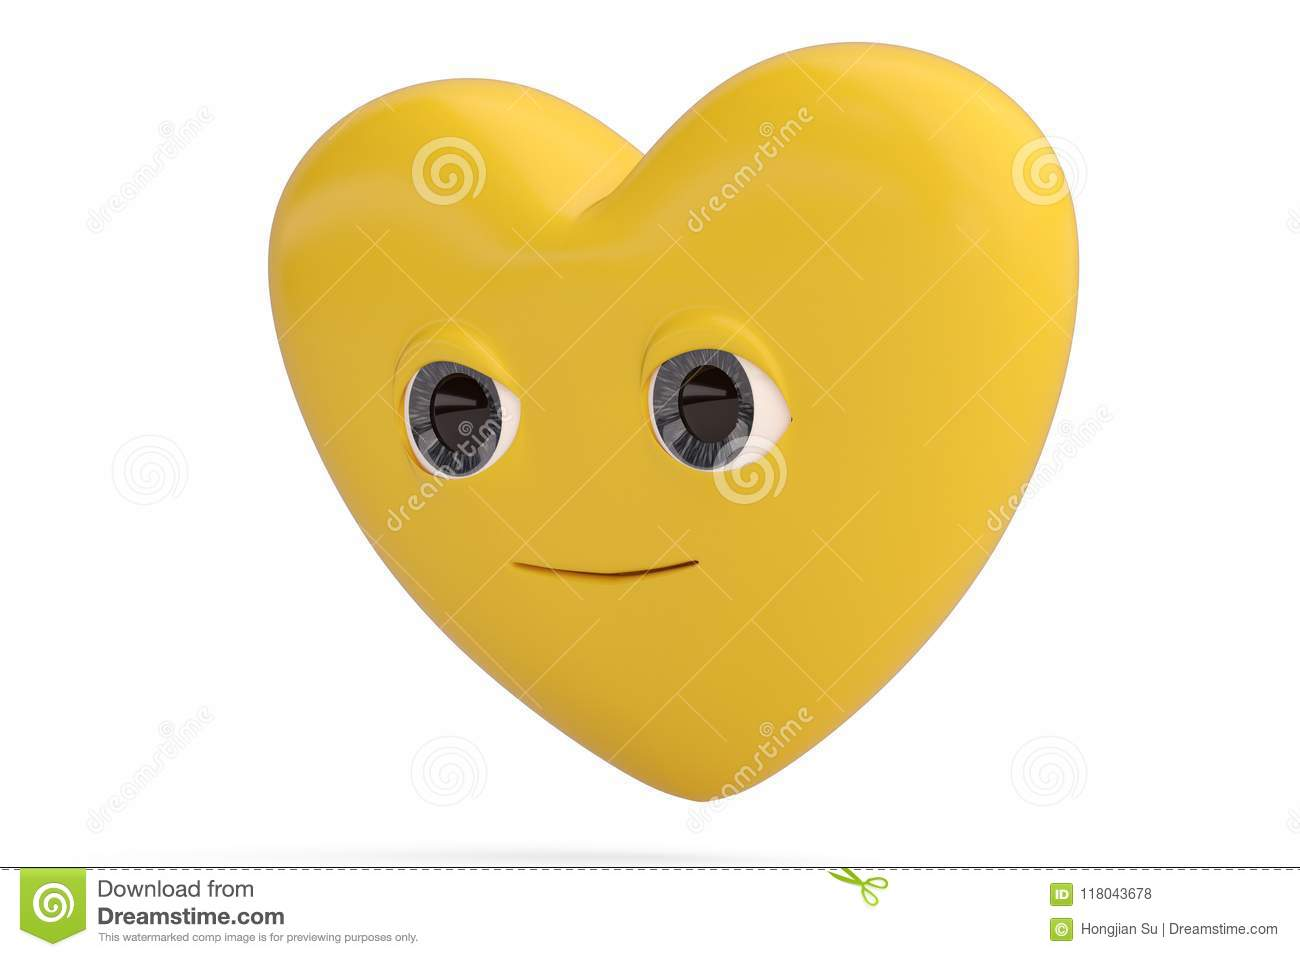 Smile Face Heart Emoticon With Heart Emoji3d Illustration Stock